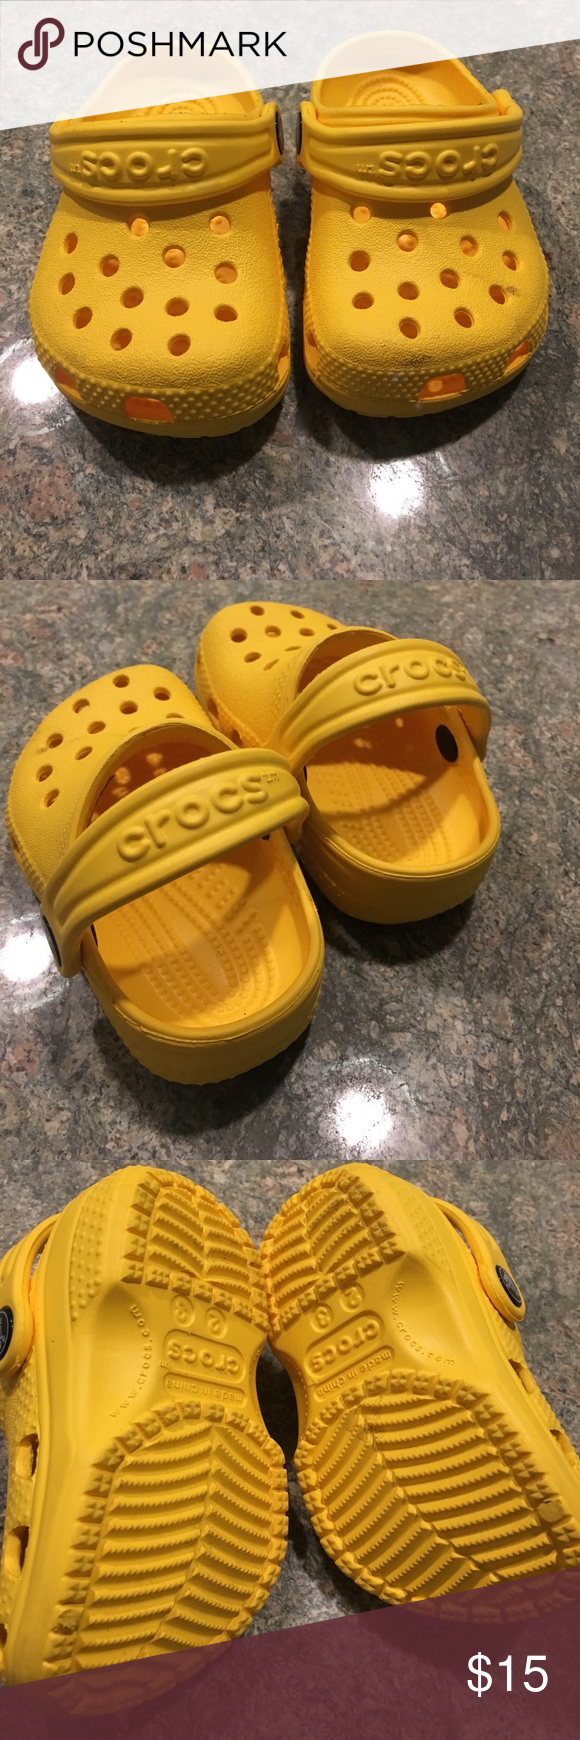 420834754ab6 Yellow crocs. Size 2 3. Adorable crocs for your little one. Mustard yellow.  Great for summer